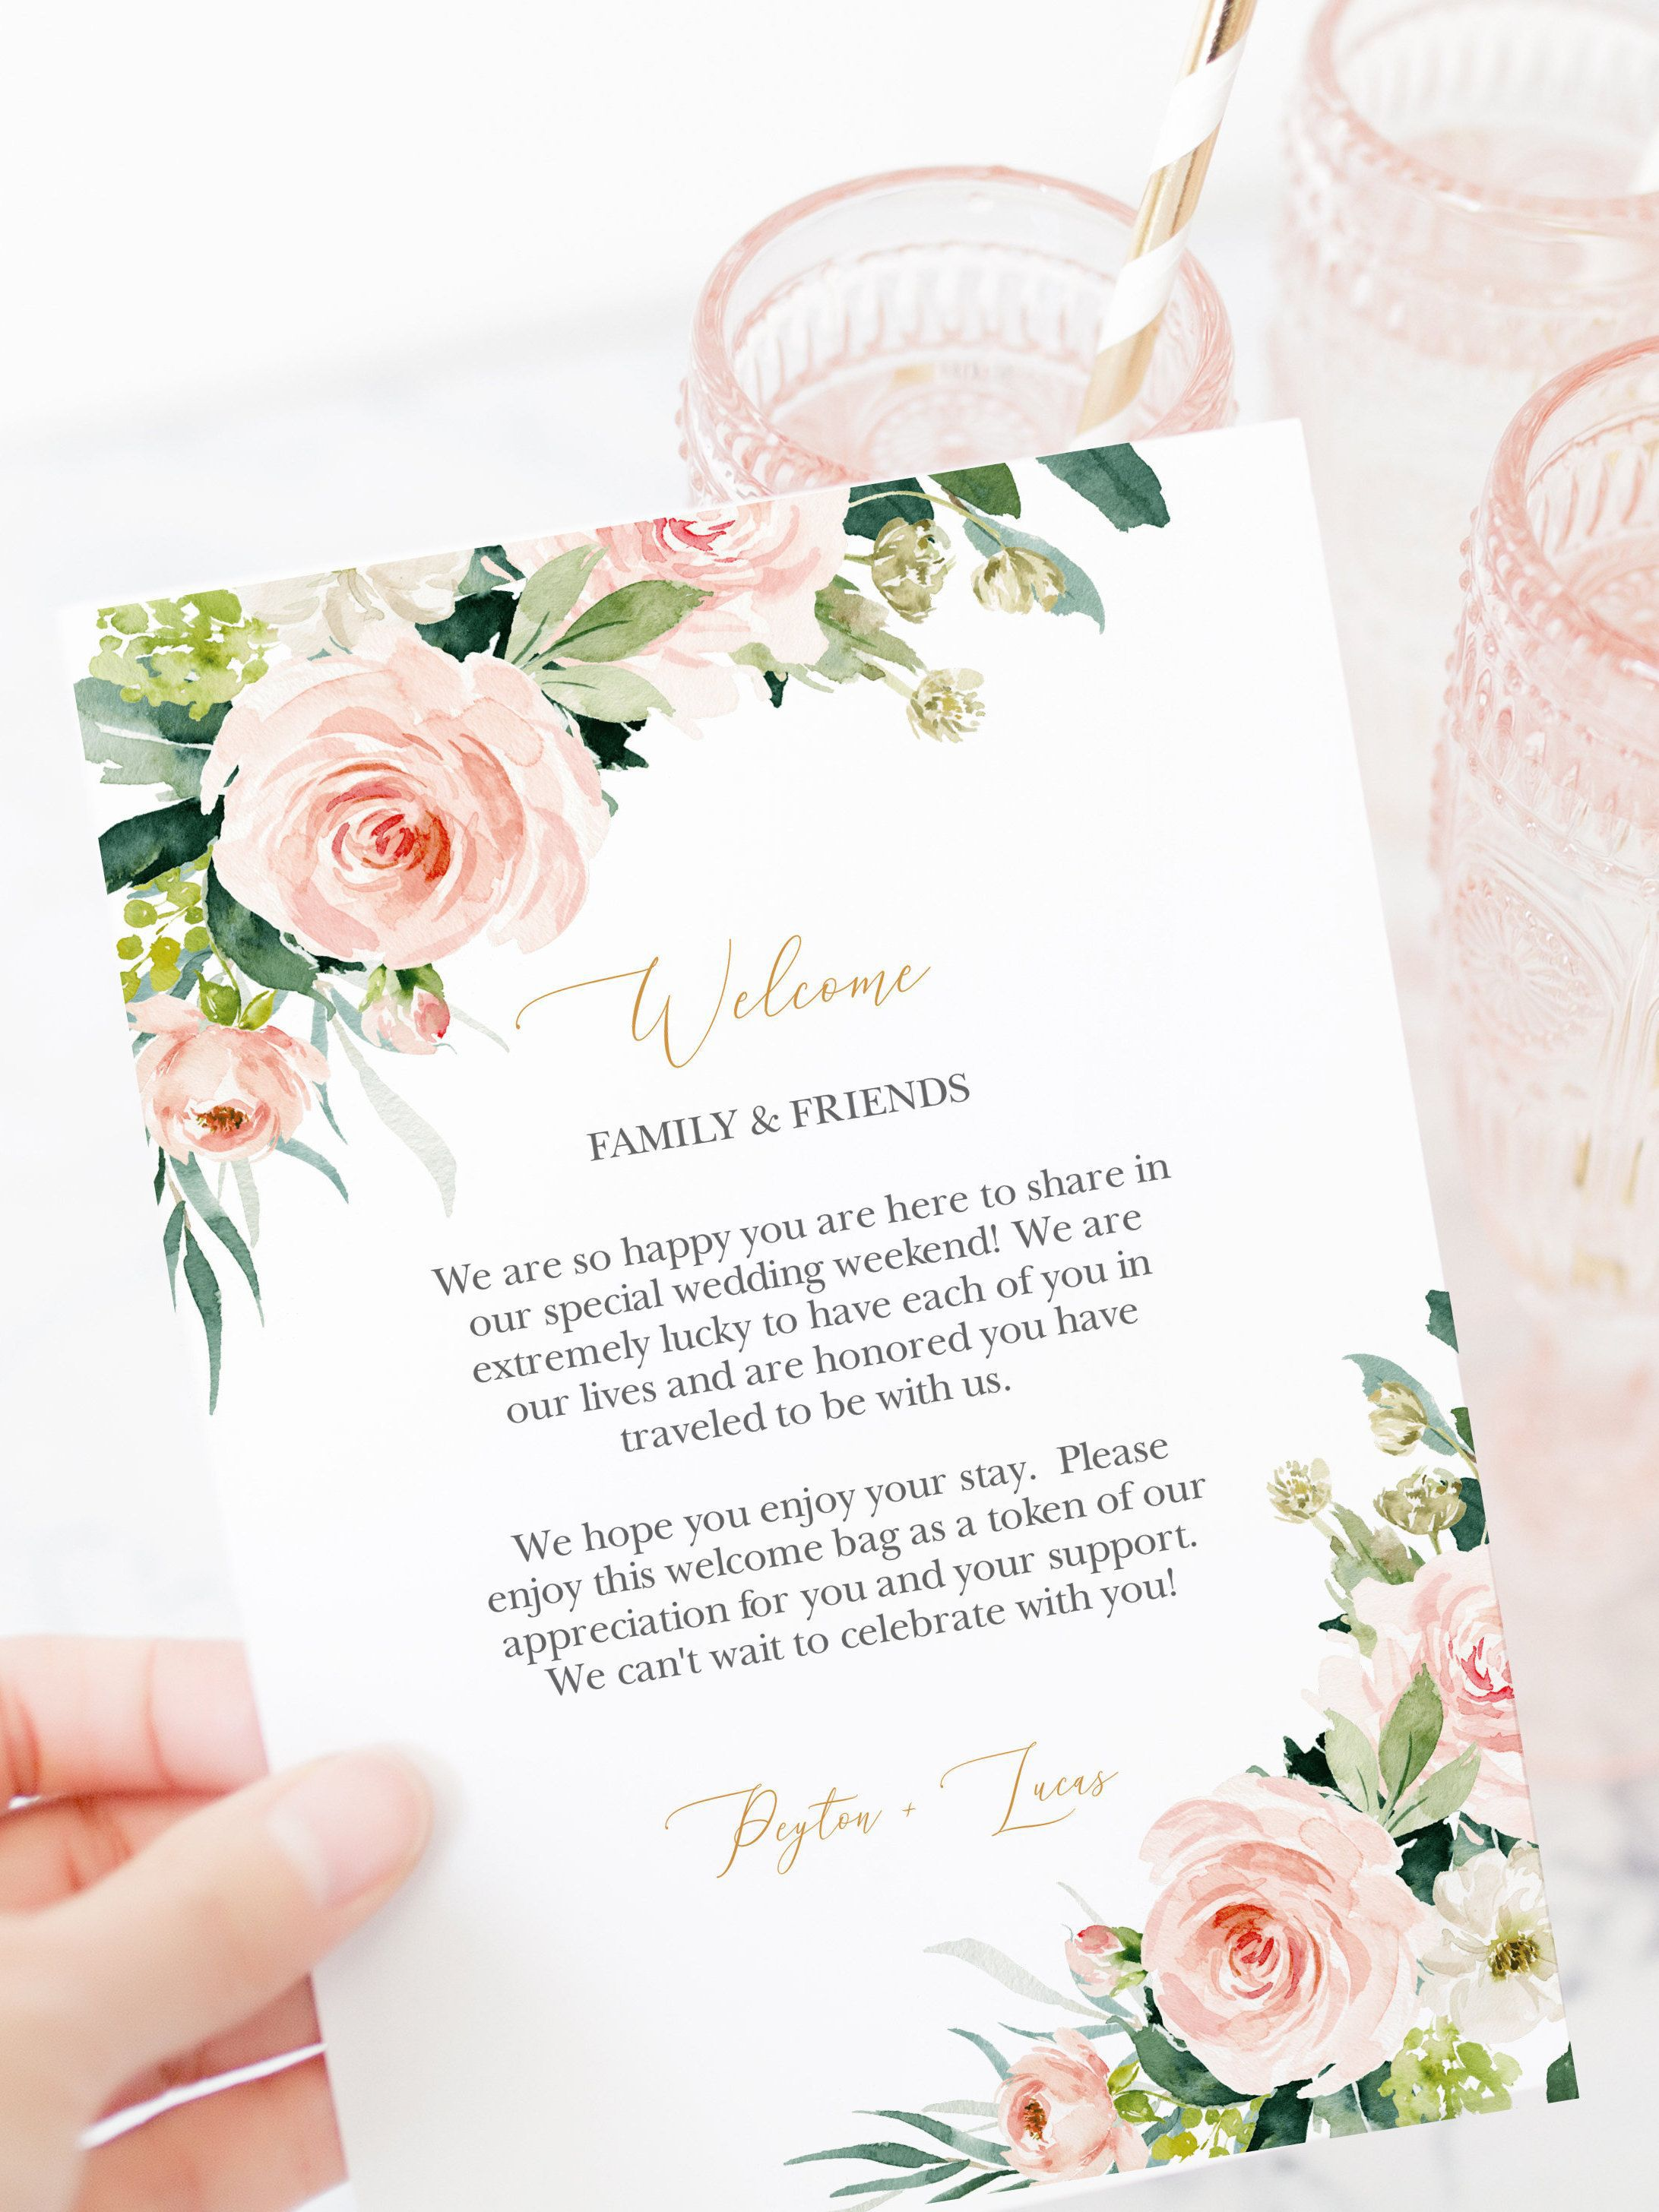 001 Striking Wedding Welcome Letter Template Download Example Full